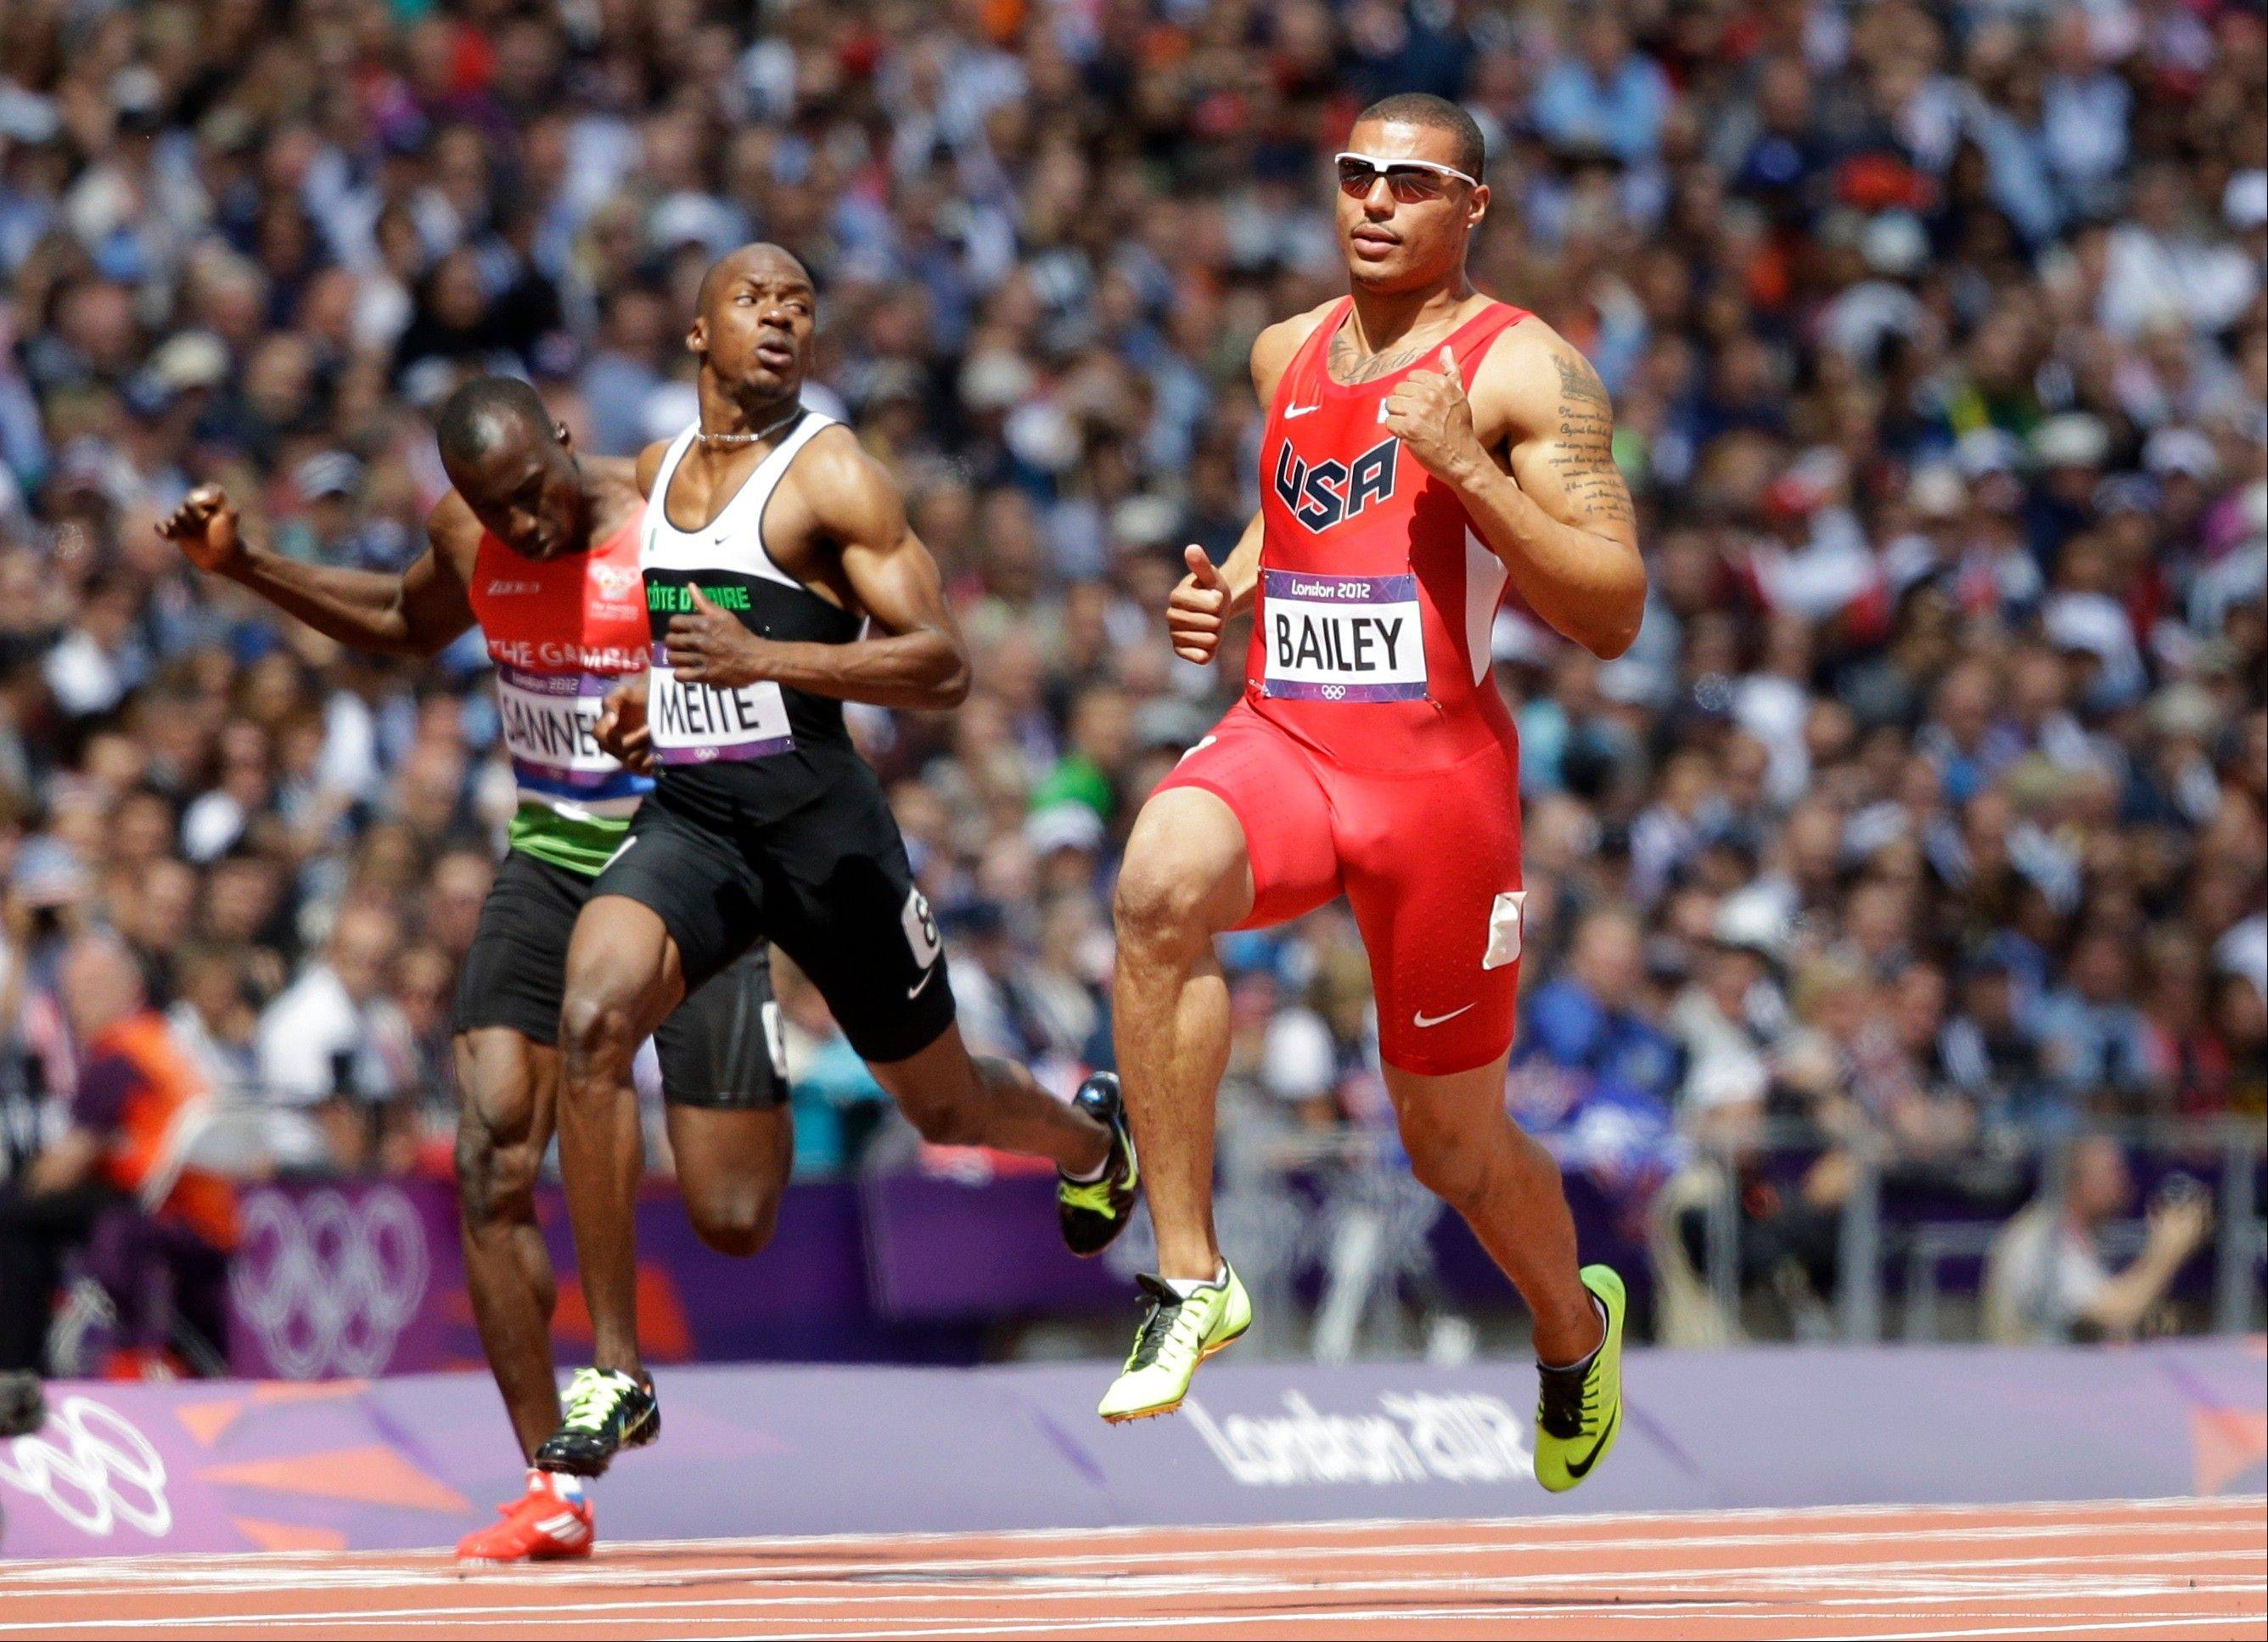 United States' Ryan Bailey, right, Ivory Coast's Ben Youssef Meite, center, and Gambia's Suwaibou Sanneh cross the finish line in a men's 100-meter heat during the athletics in the Olympic Stadium at the 2012 Summer Olympics, London, Saturday, Aug. 4, 2012.